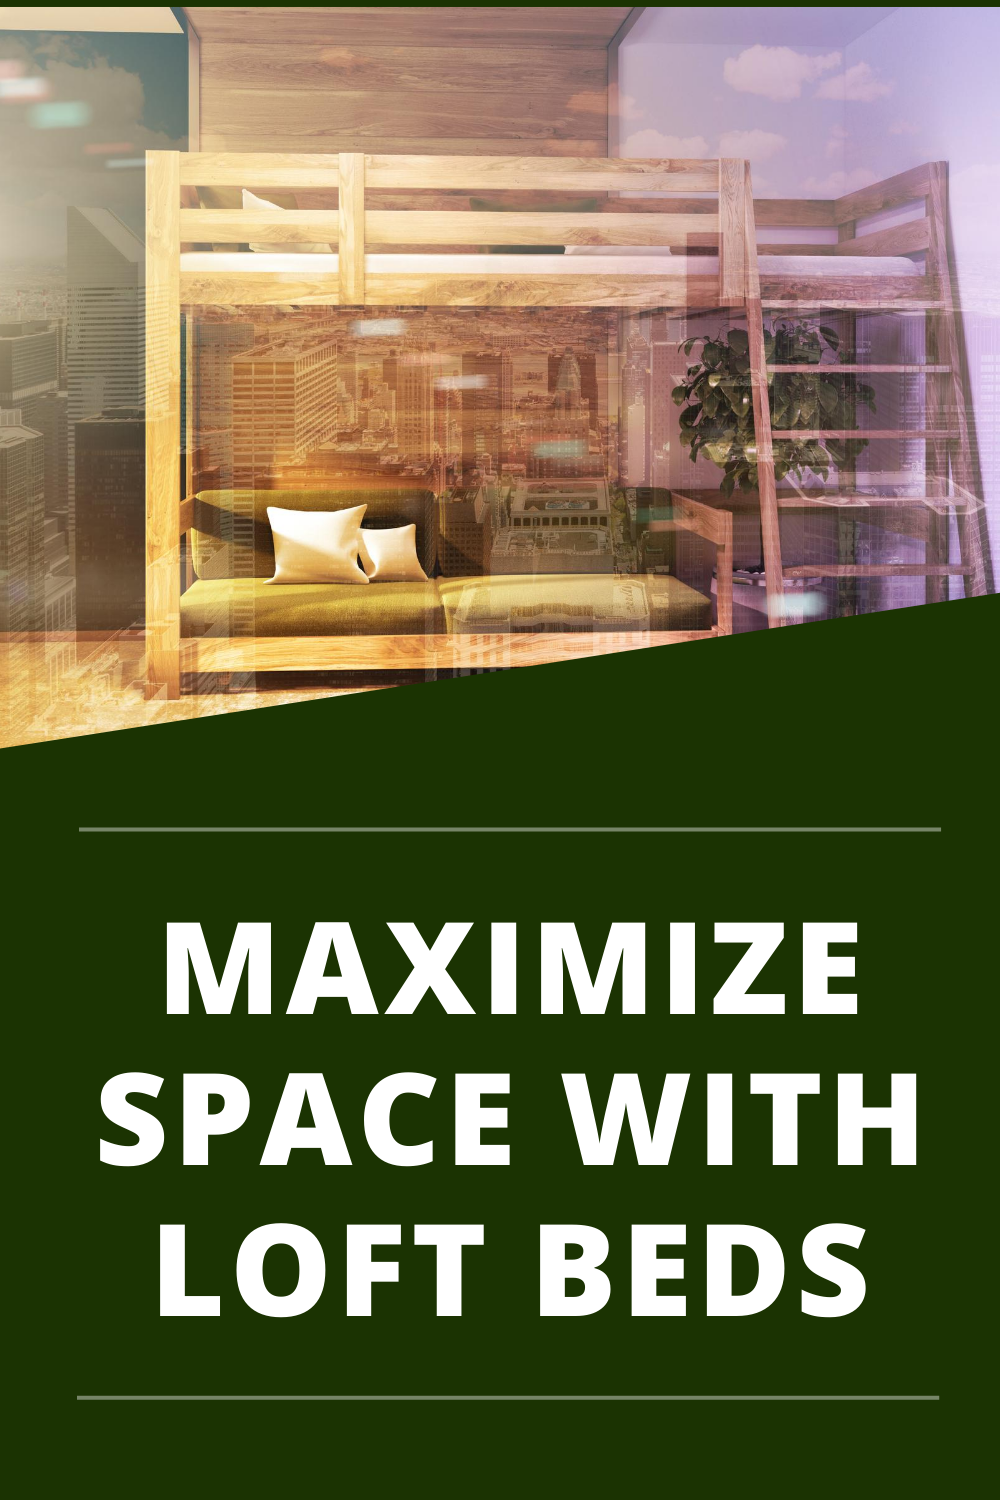 Maximizing The Space Of Small Rooms With Loft Beds